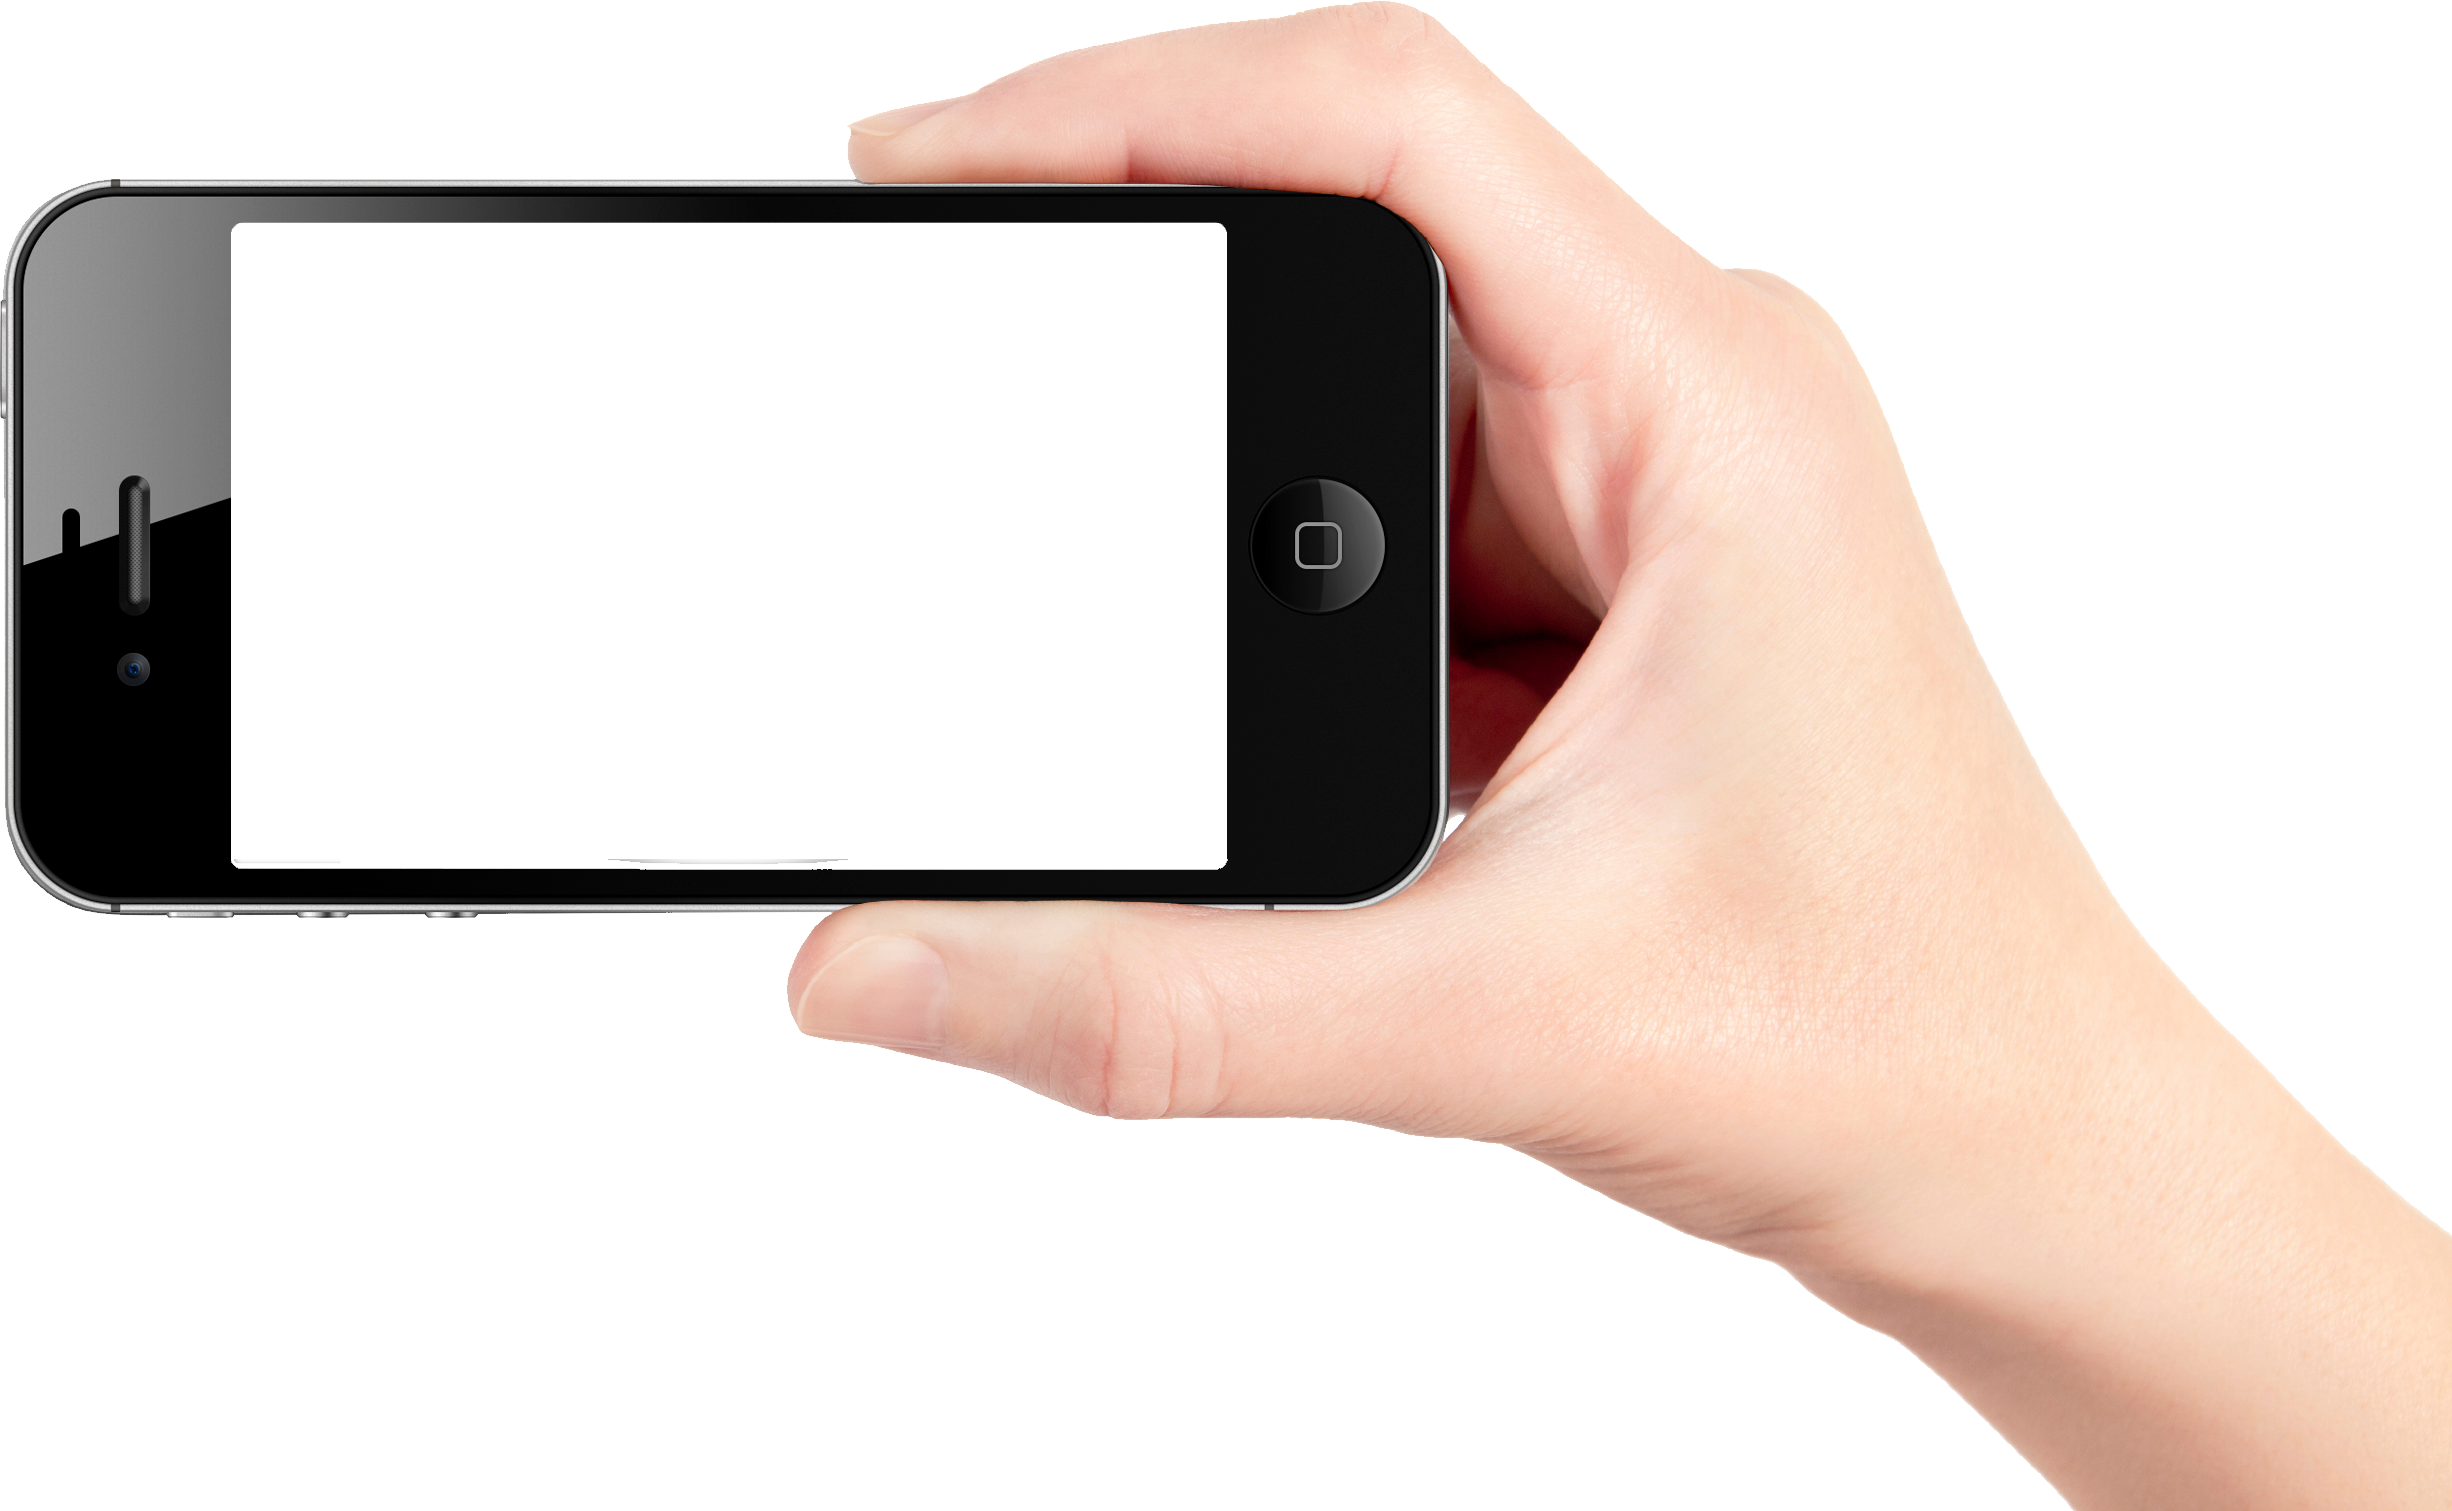 Mobile in png transparent. Cellphone clipart hand holding